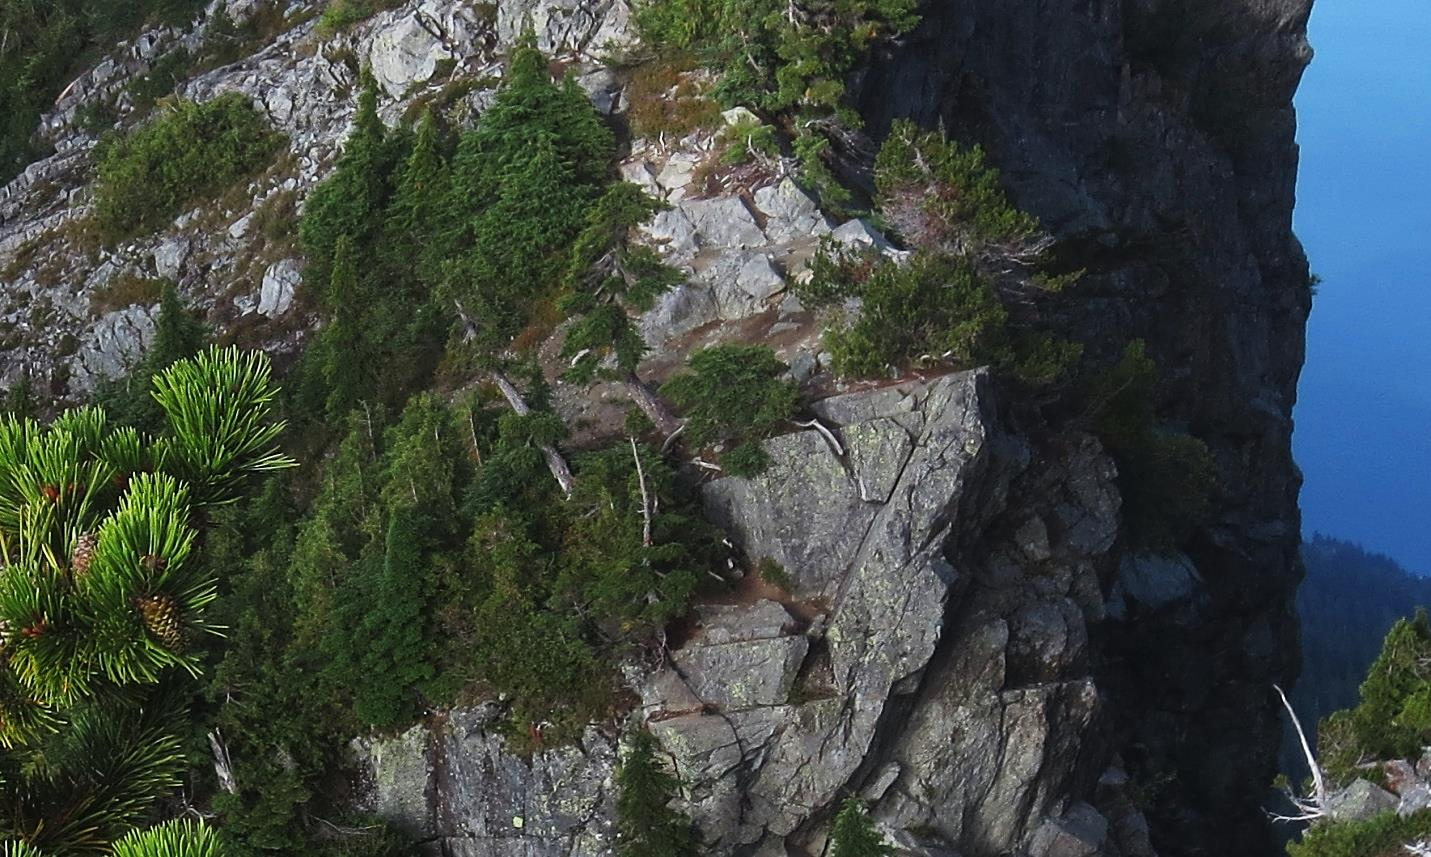 Photograph of Conifers growing on granitic rocks at The Lions, near to Vancouver BC